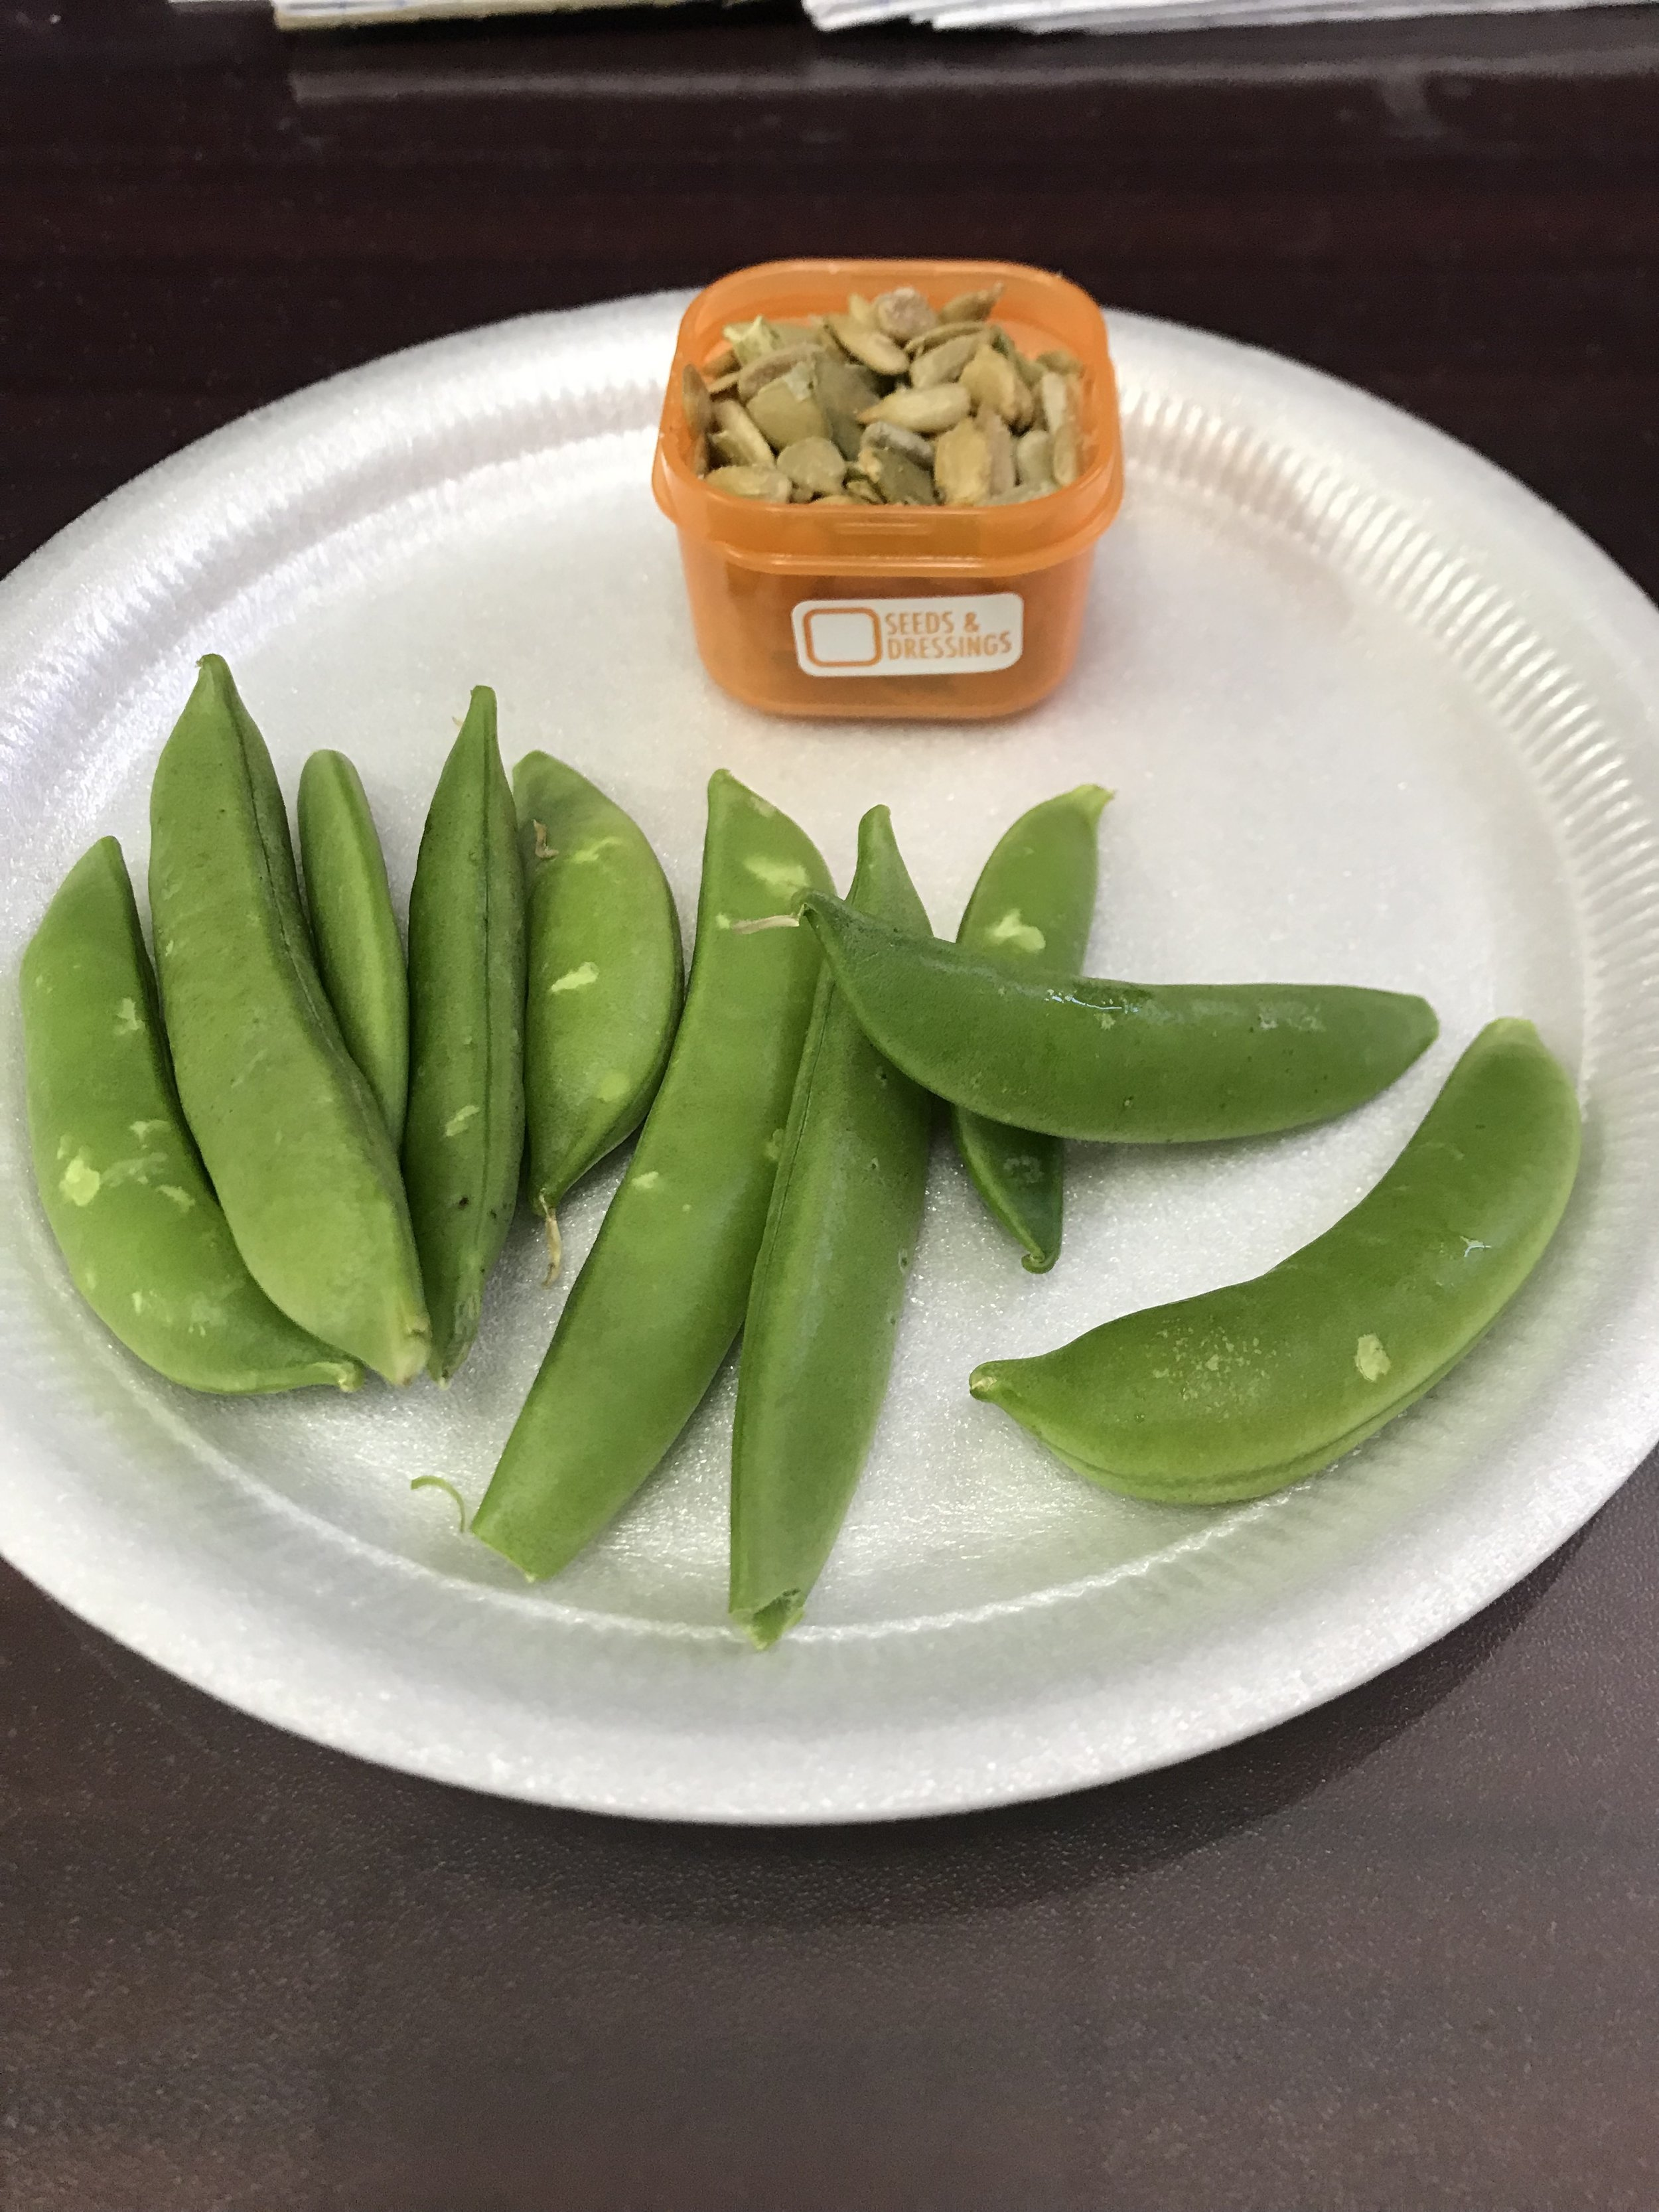 MID-MORNING SNACK - Sugar Snap Peas and a mix of Sunflower and Pumpkin Seeds.